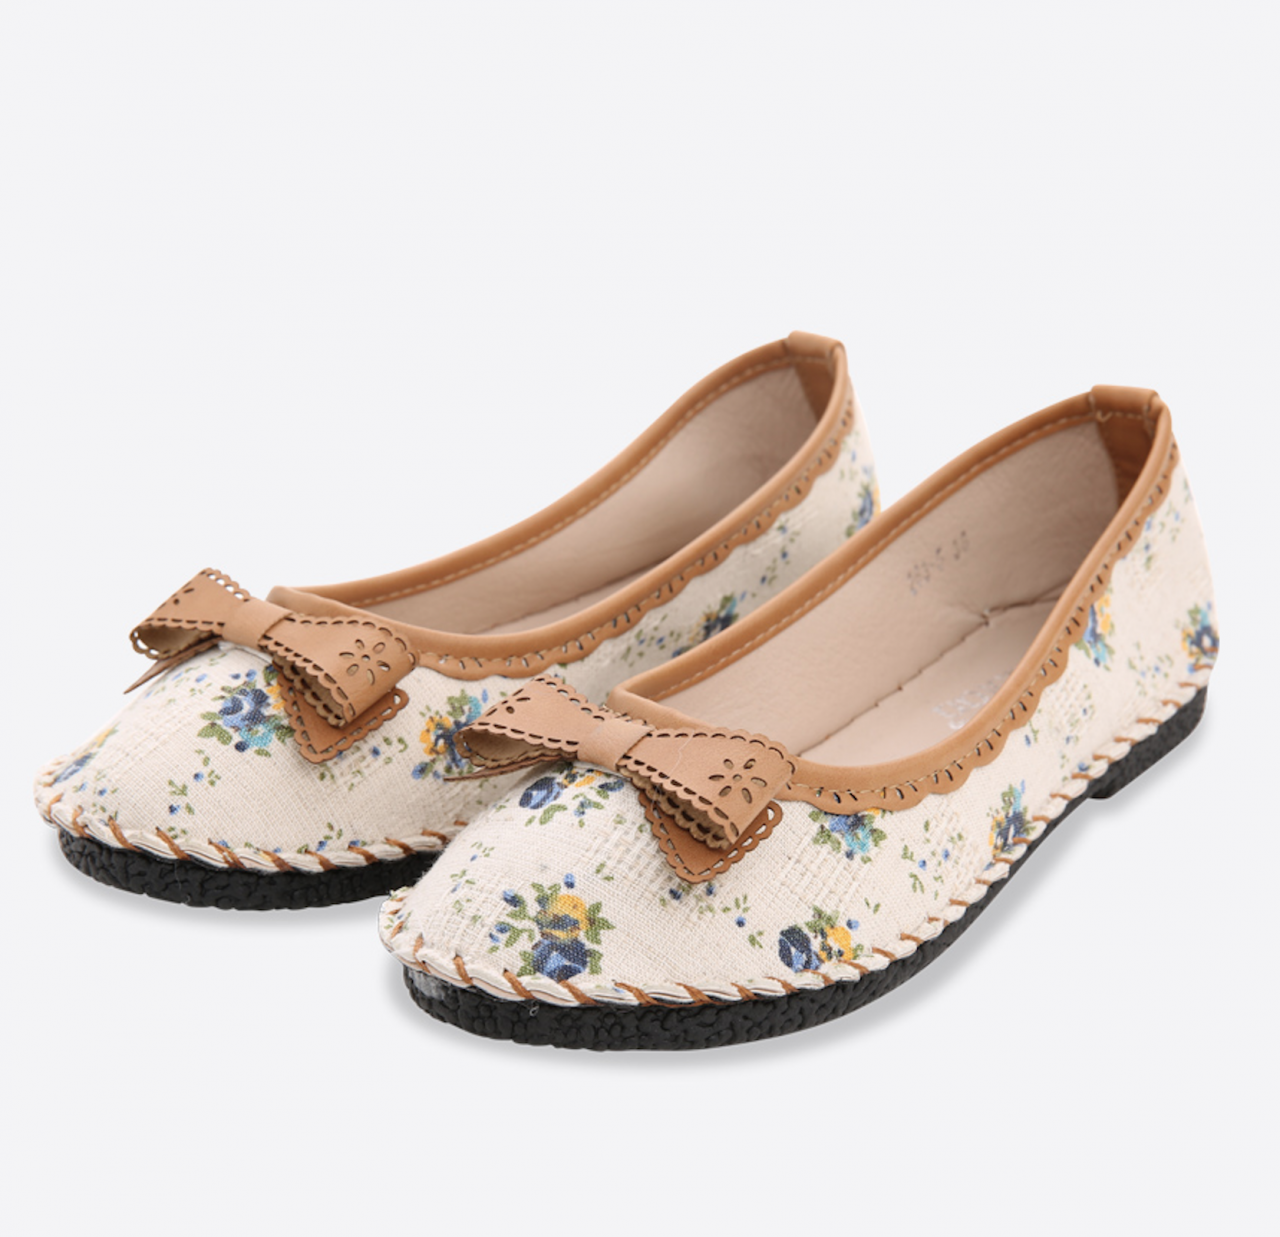 Floral Printed Canvas Ballerina Pumps with Ribbon